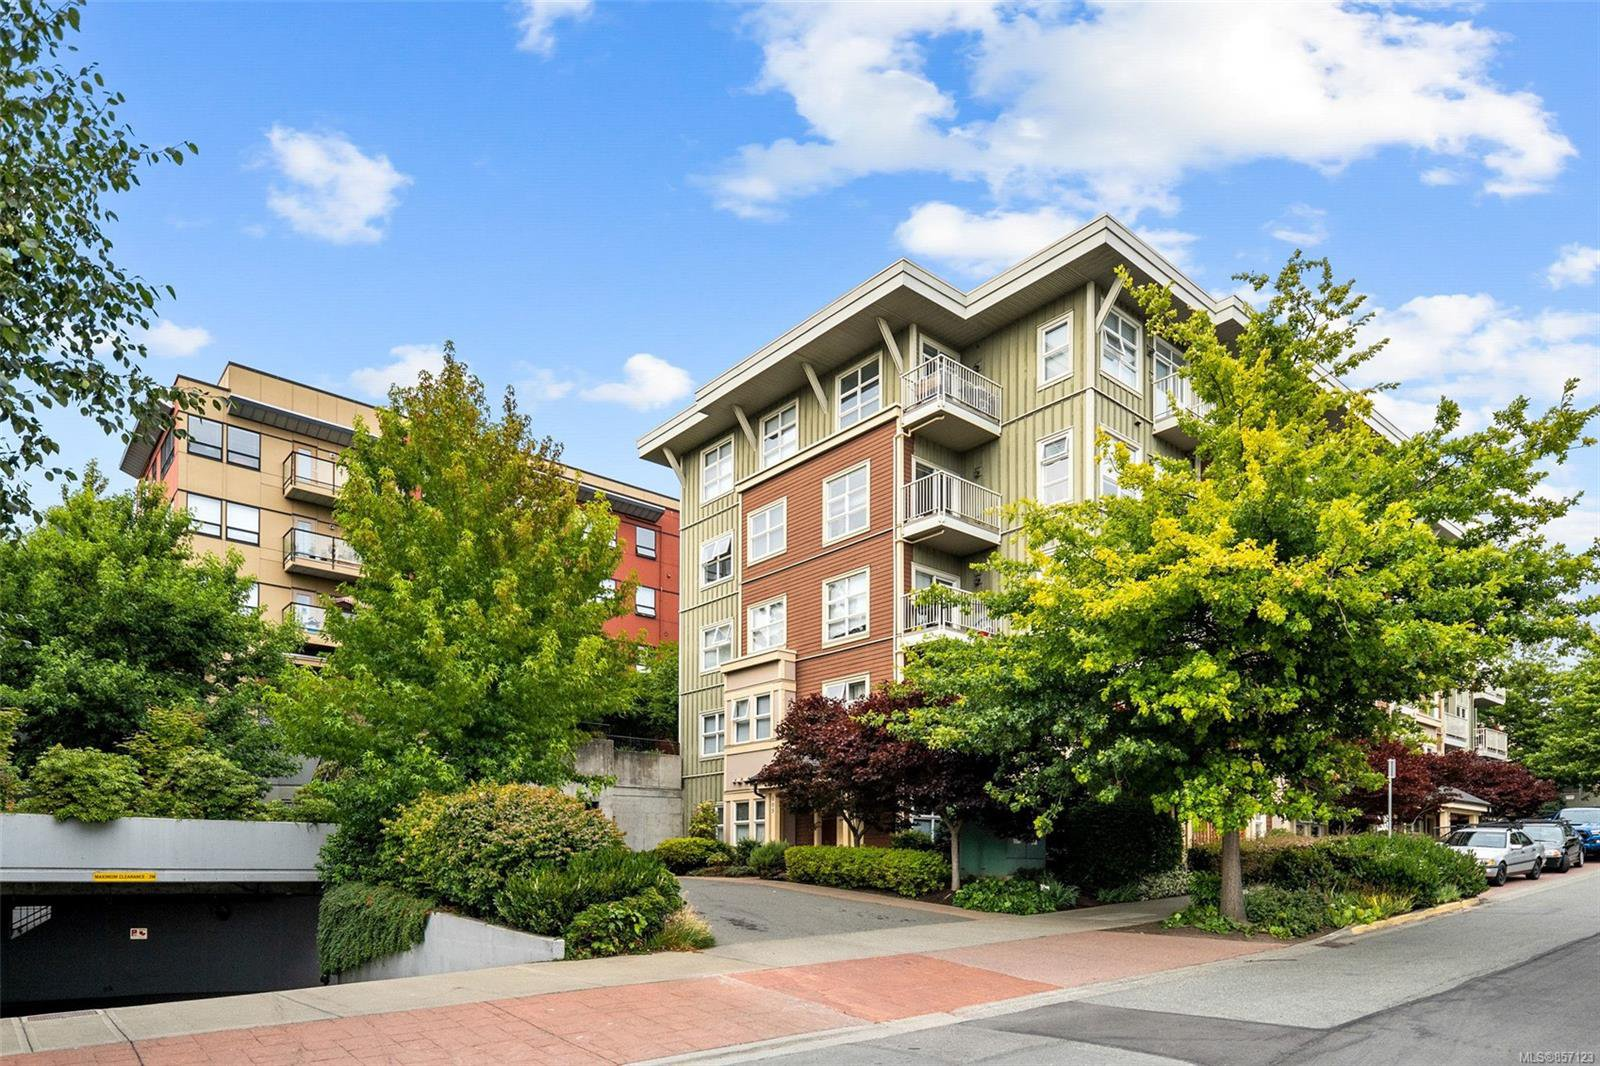 Main Photo: 519 870 Short St in : SE Quadra Condo for sale (Saanich East)  : MLS®# 857123